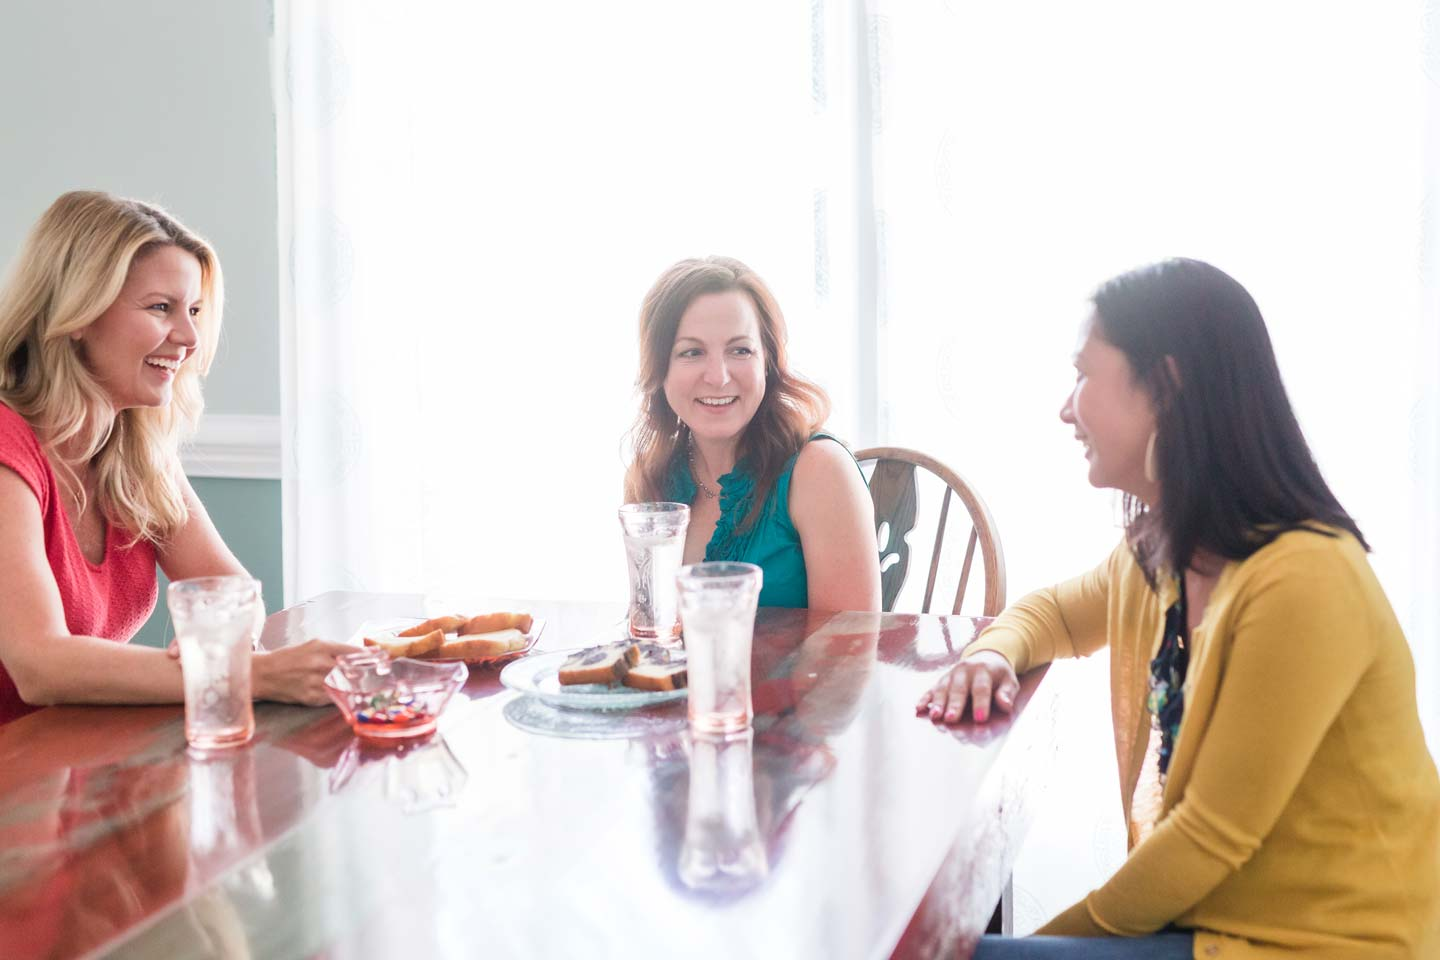 Melissa Bell, a speaker for Women's Christian events, talking with group of women